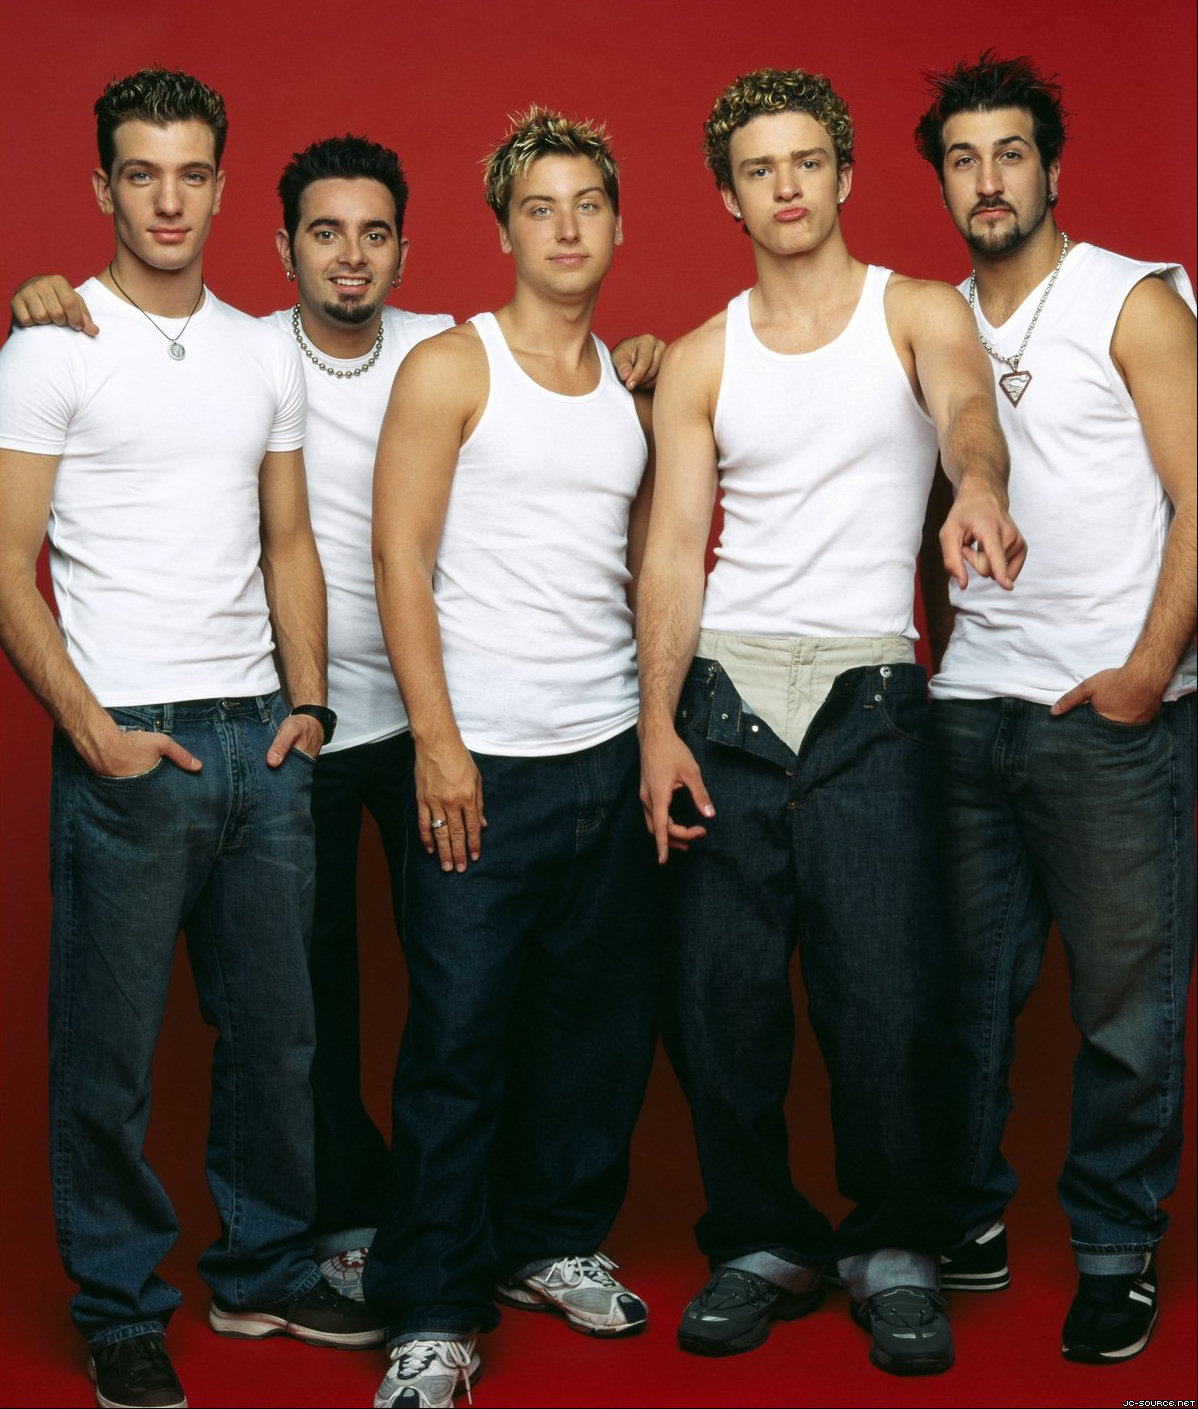 ... Bands That Prove The Boy Band Is Back. View Original . [Updated on 02